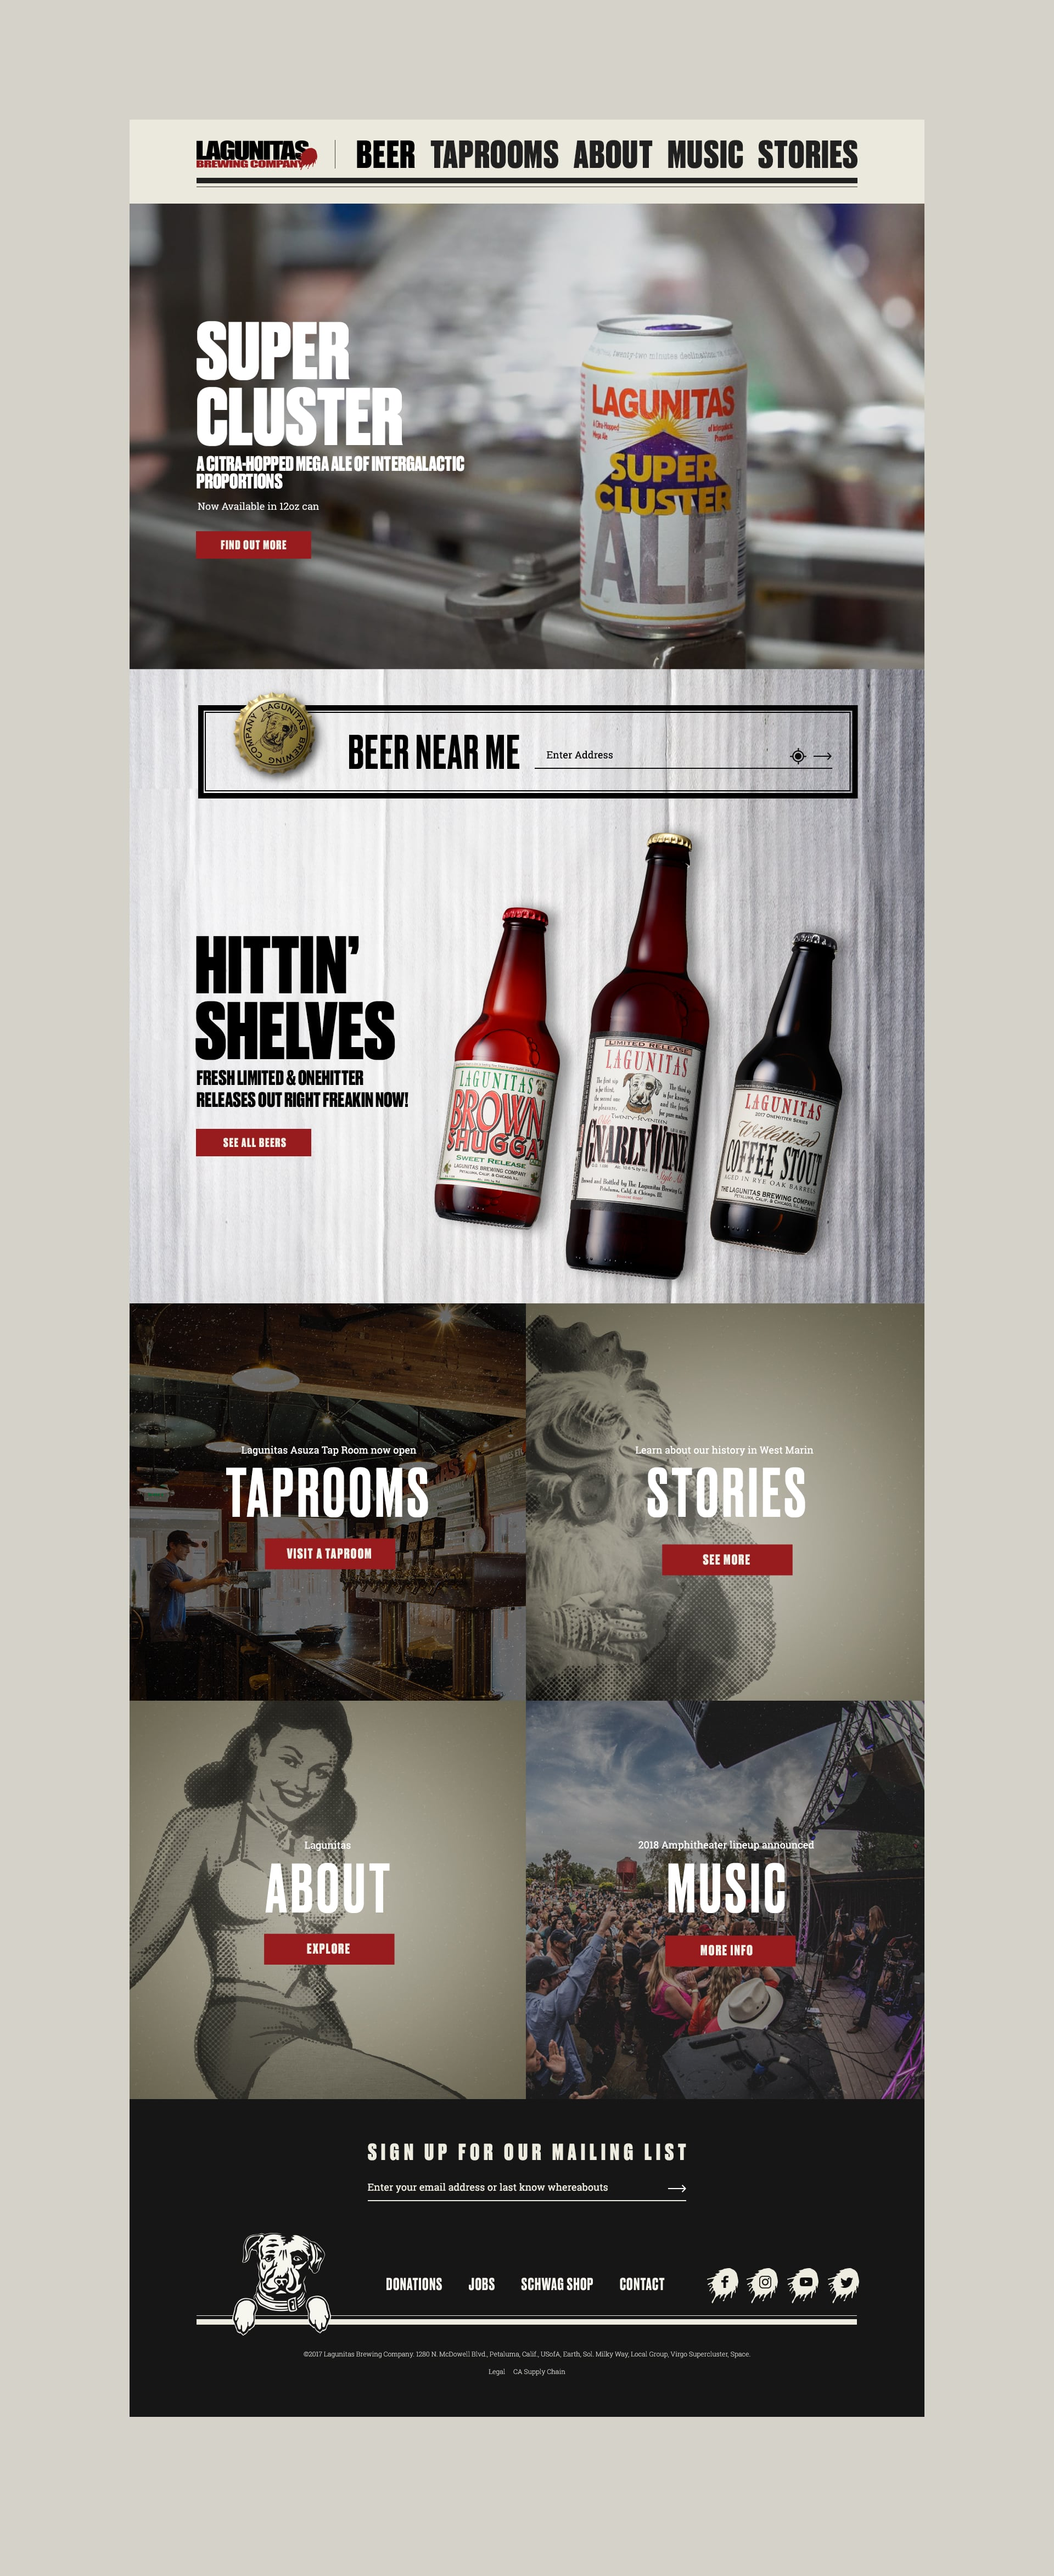 Lagunitas Brewing Company Website. Design and content crafted by Teak. A San-Francisco based branding and content studio.